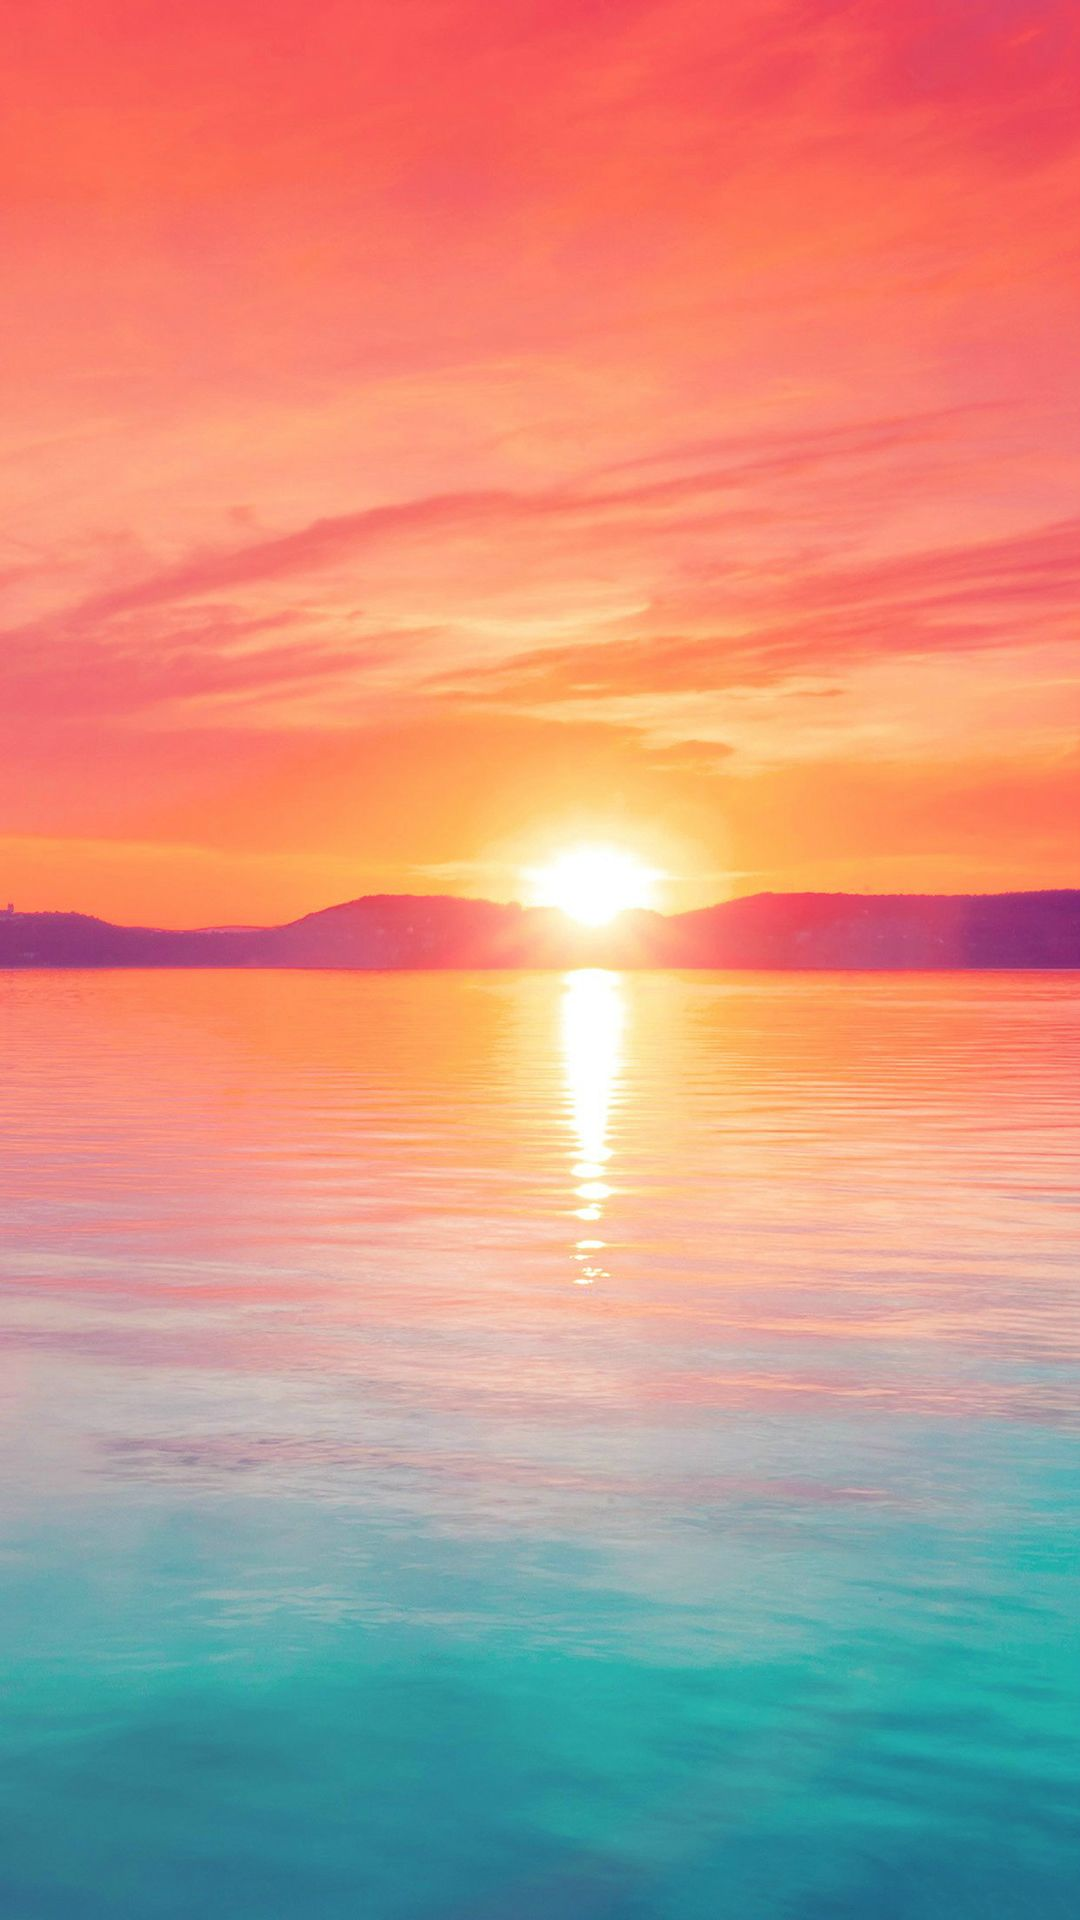 Sunset Night Lake Water Sky Red Flare IPhone 6 Wallpaper